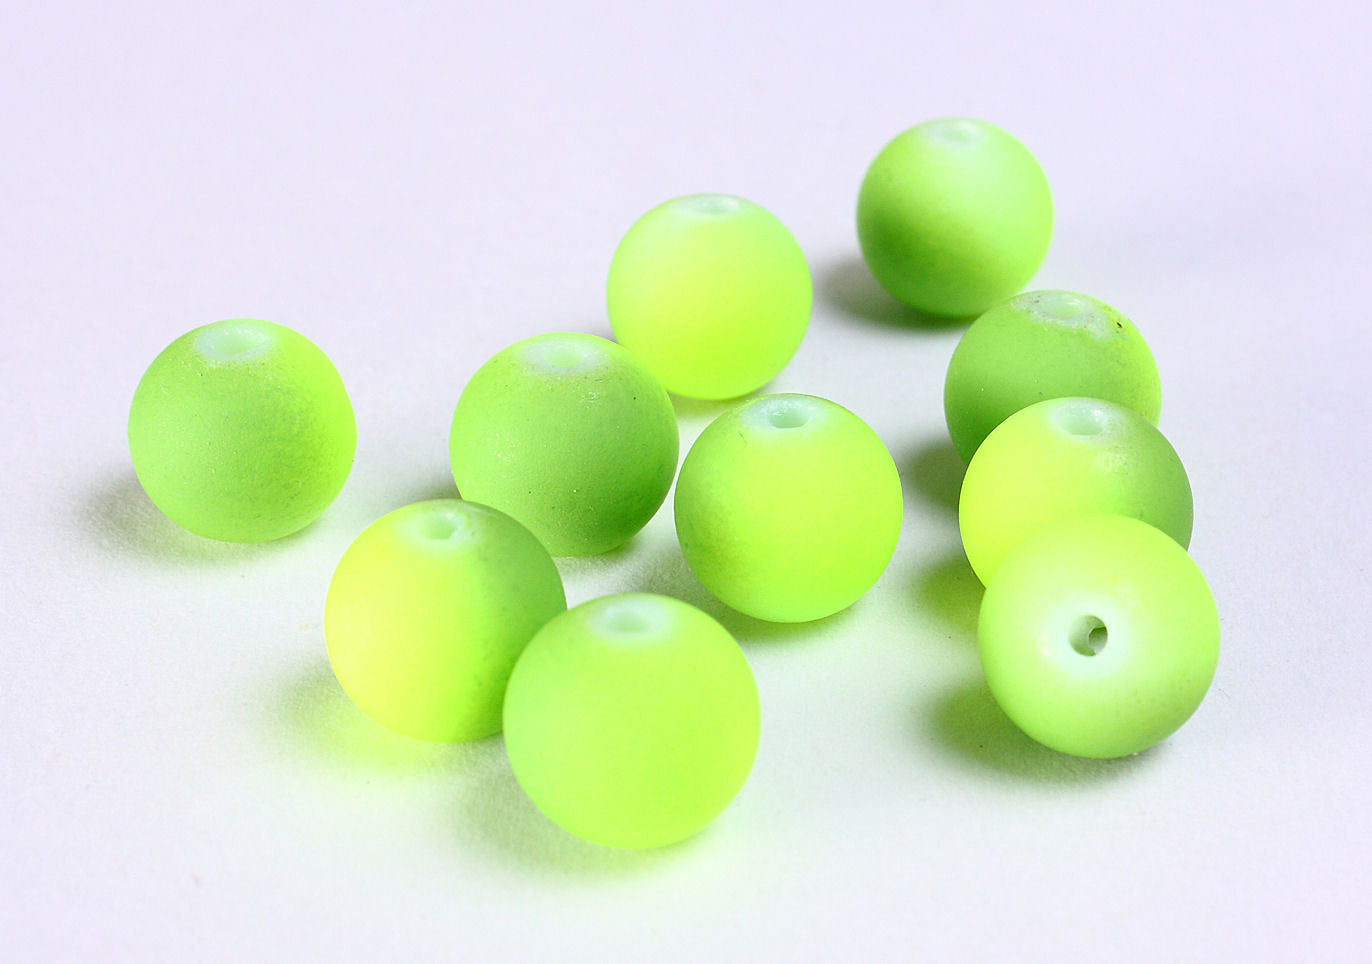 10mm green and yellow round rubberized style glass beads - Matte Rubber Beads - Rubber balls - Matte Rubber Bead - 10 pieces (1160)